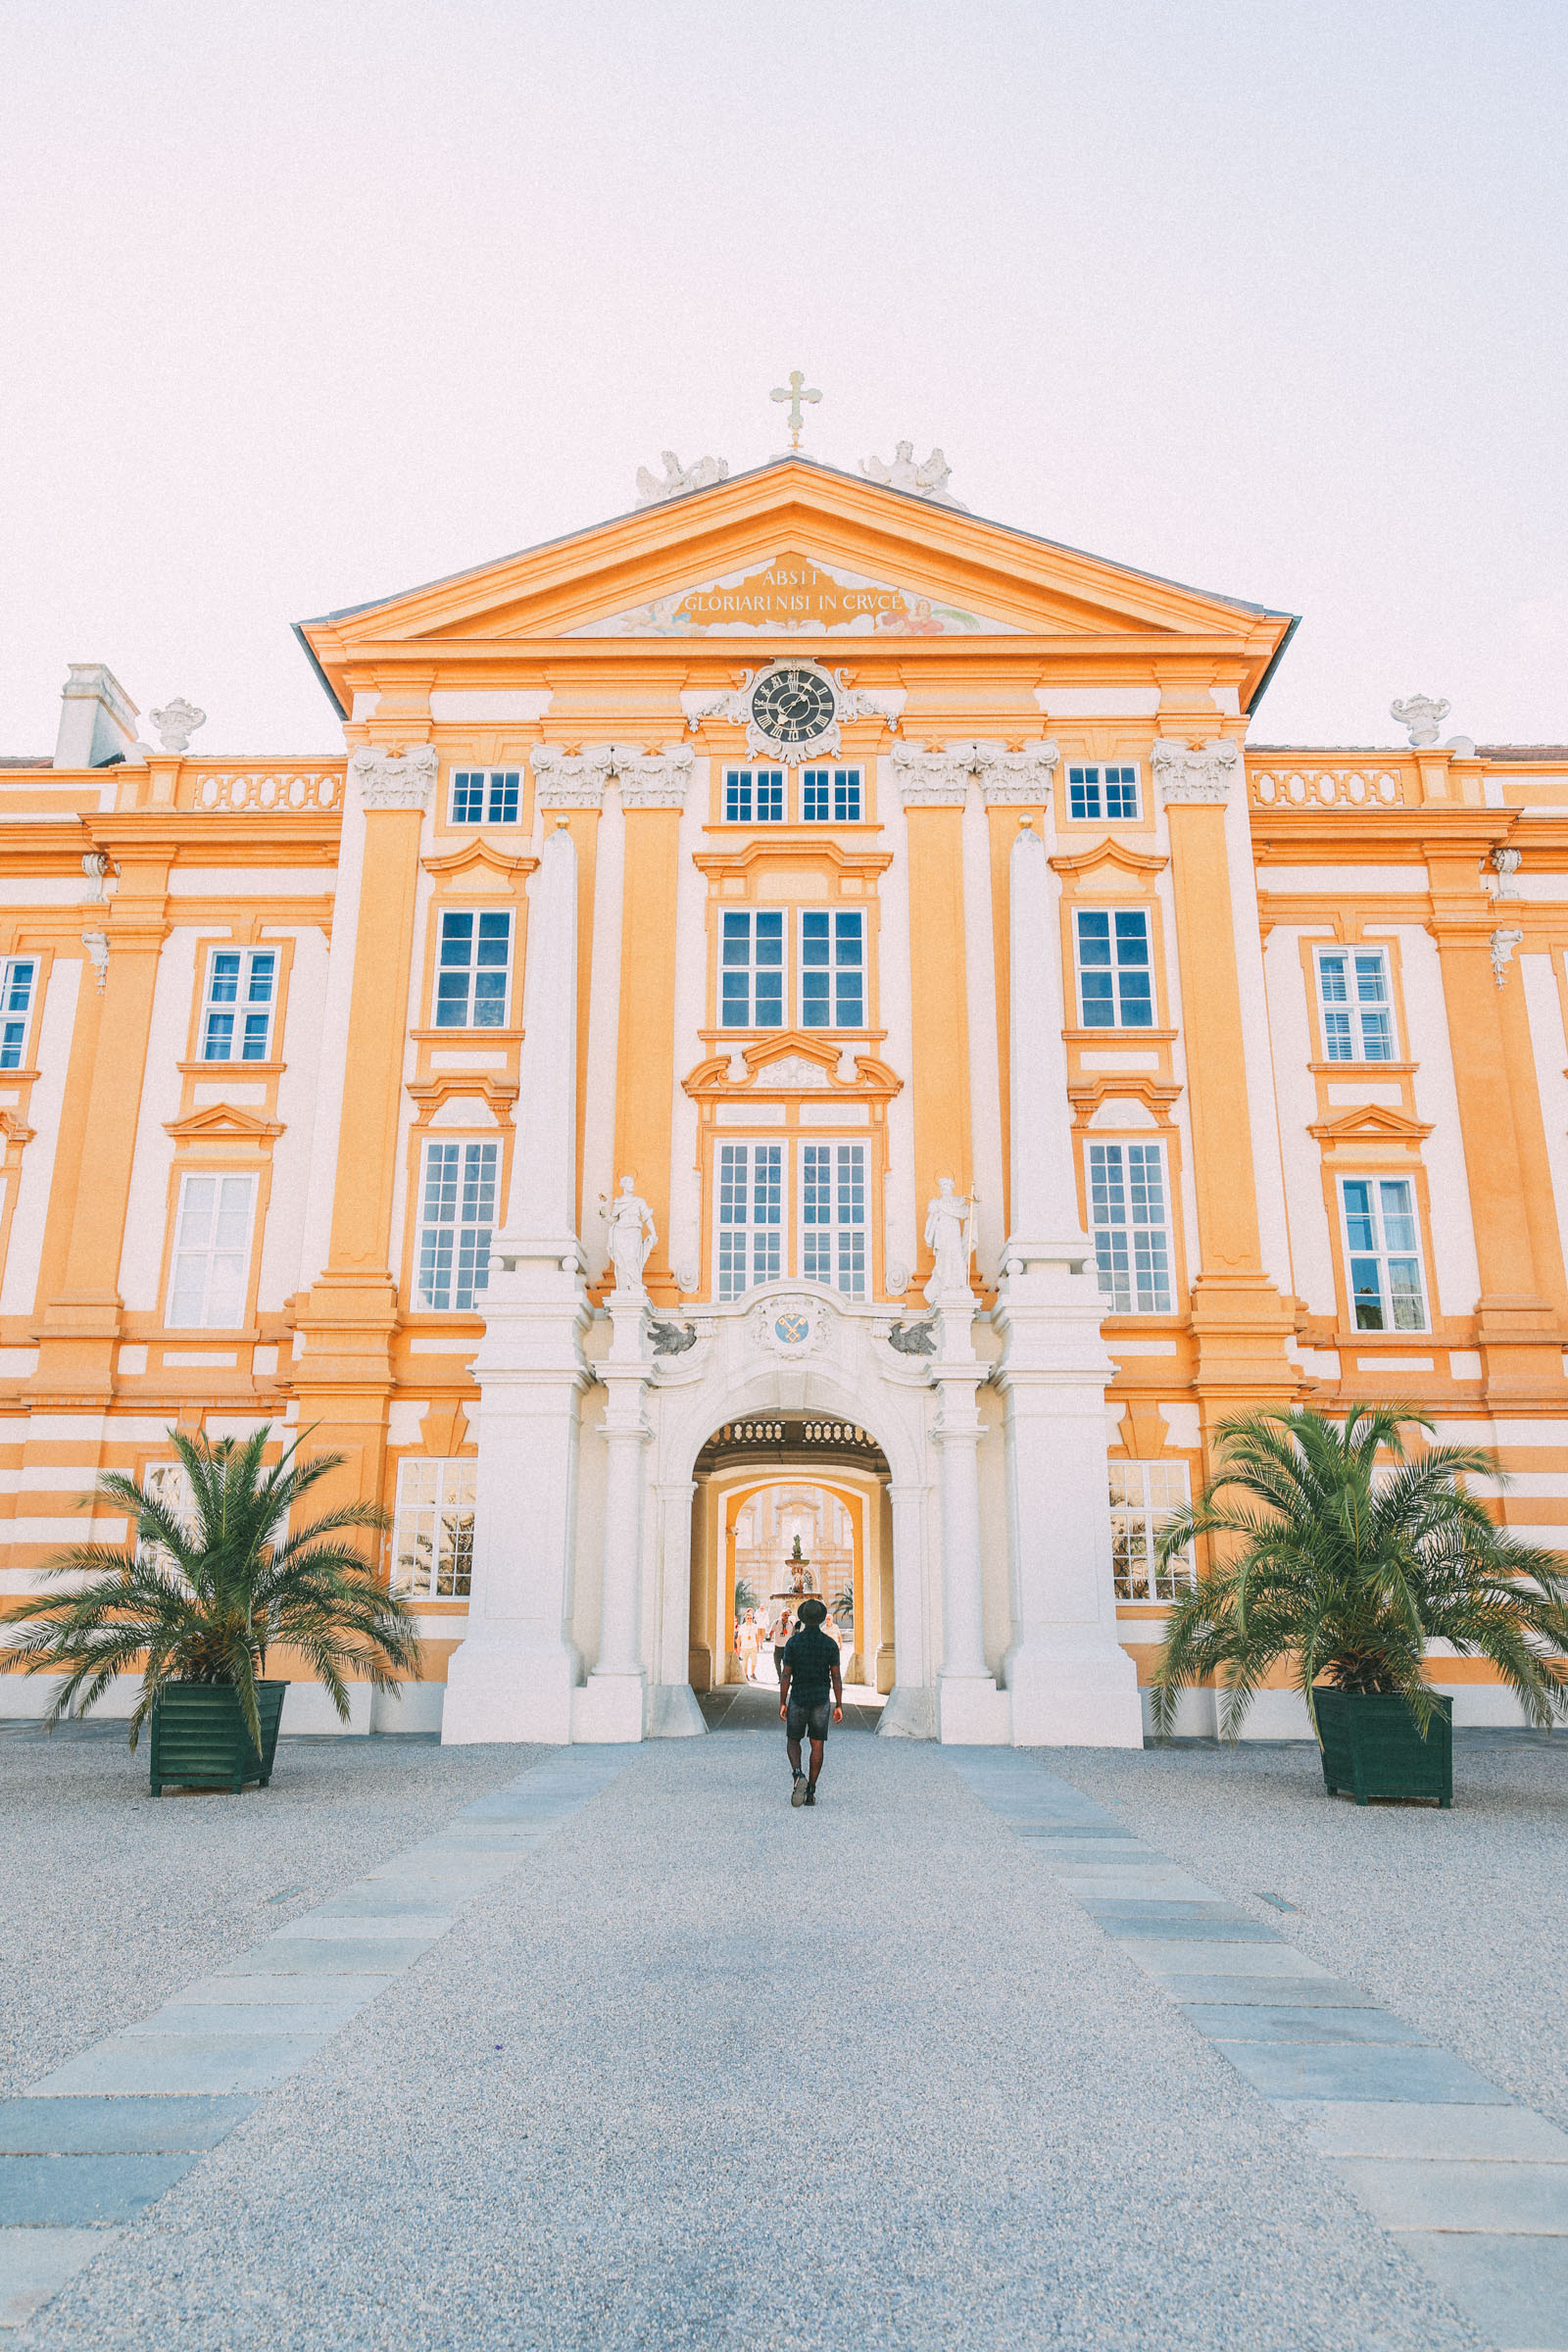 The Amazing Melk Abbey of The Wachau, Austria… And Hiking The Wachau World Heritage Trail (34)